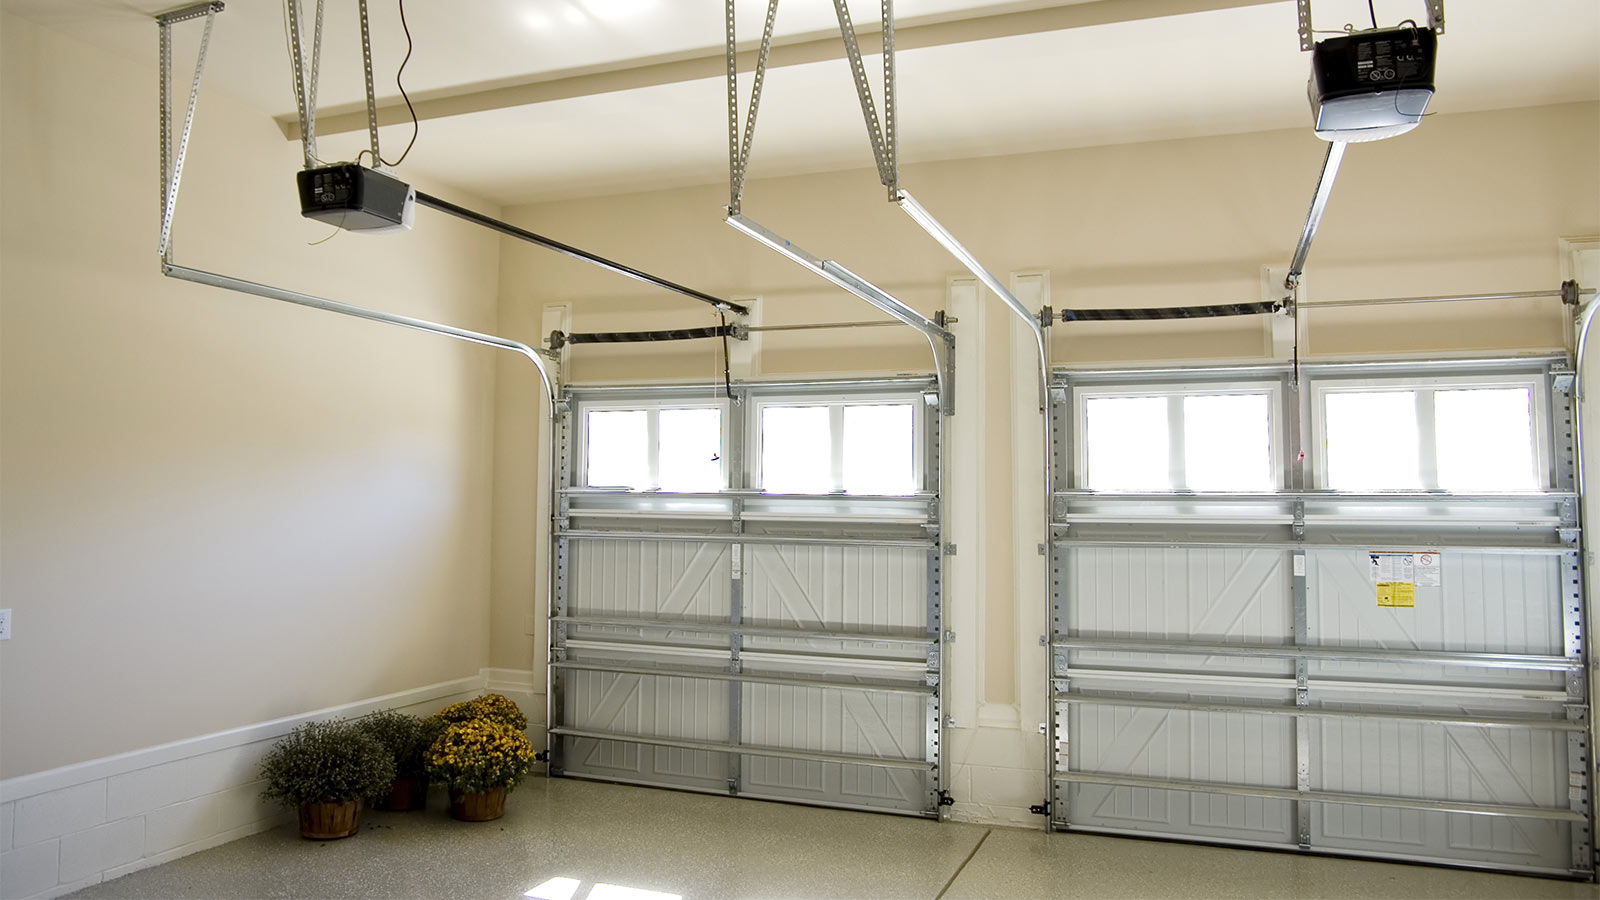 Sectional Garage Doors from Electric Roller Garage Doors Kent suppliers.